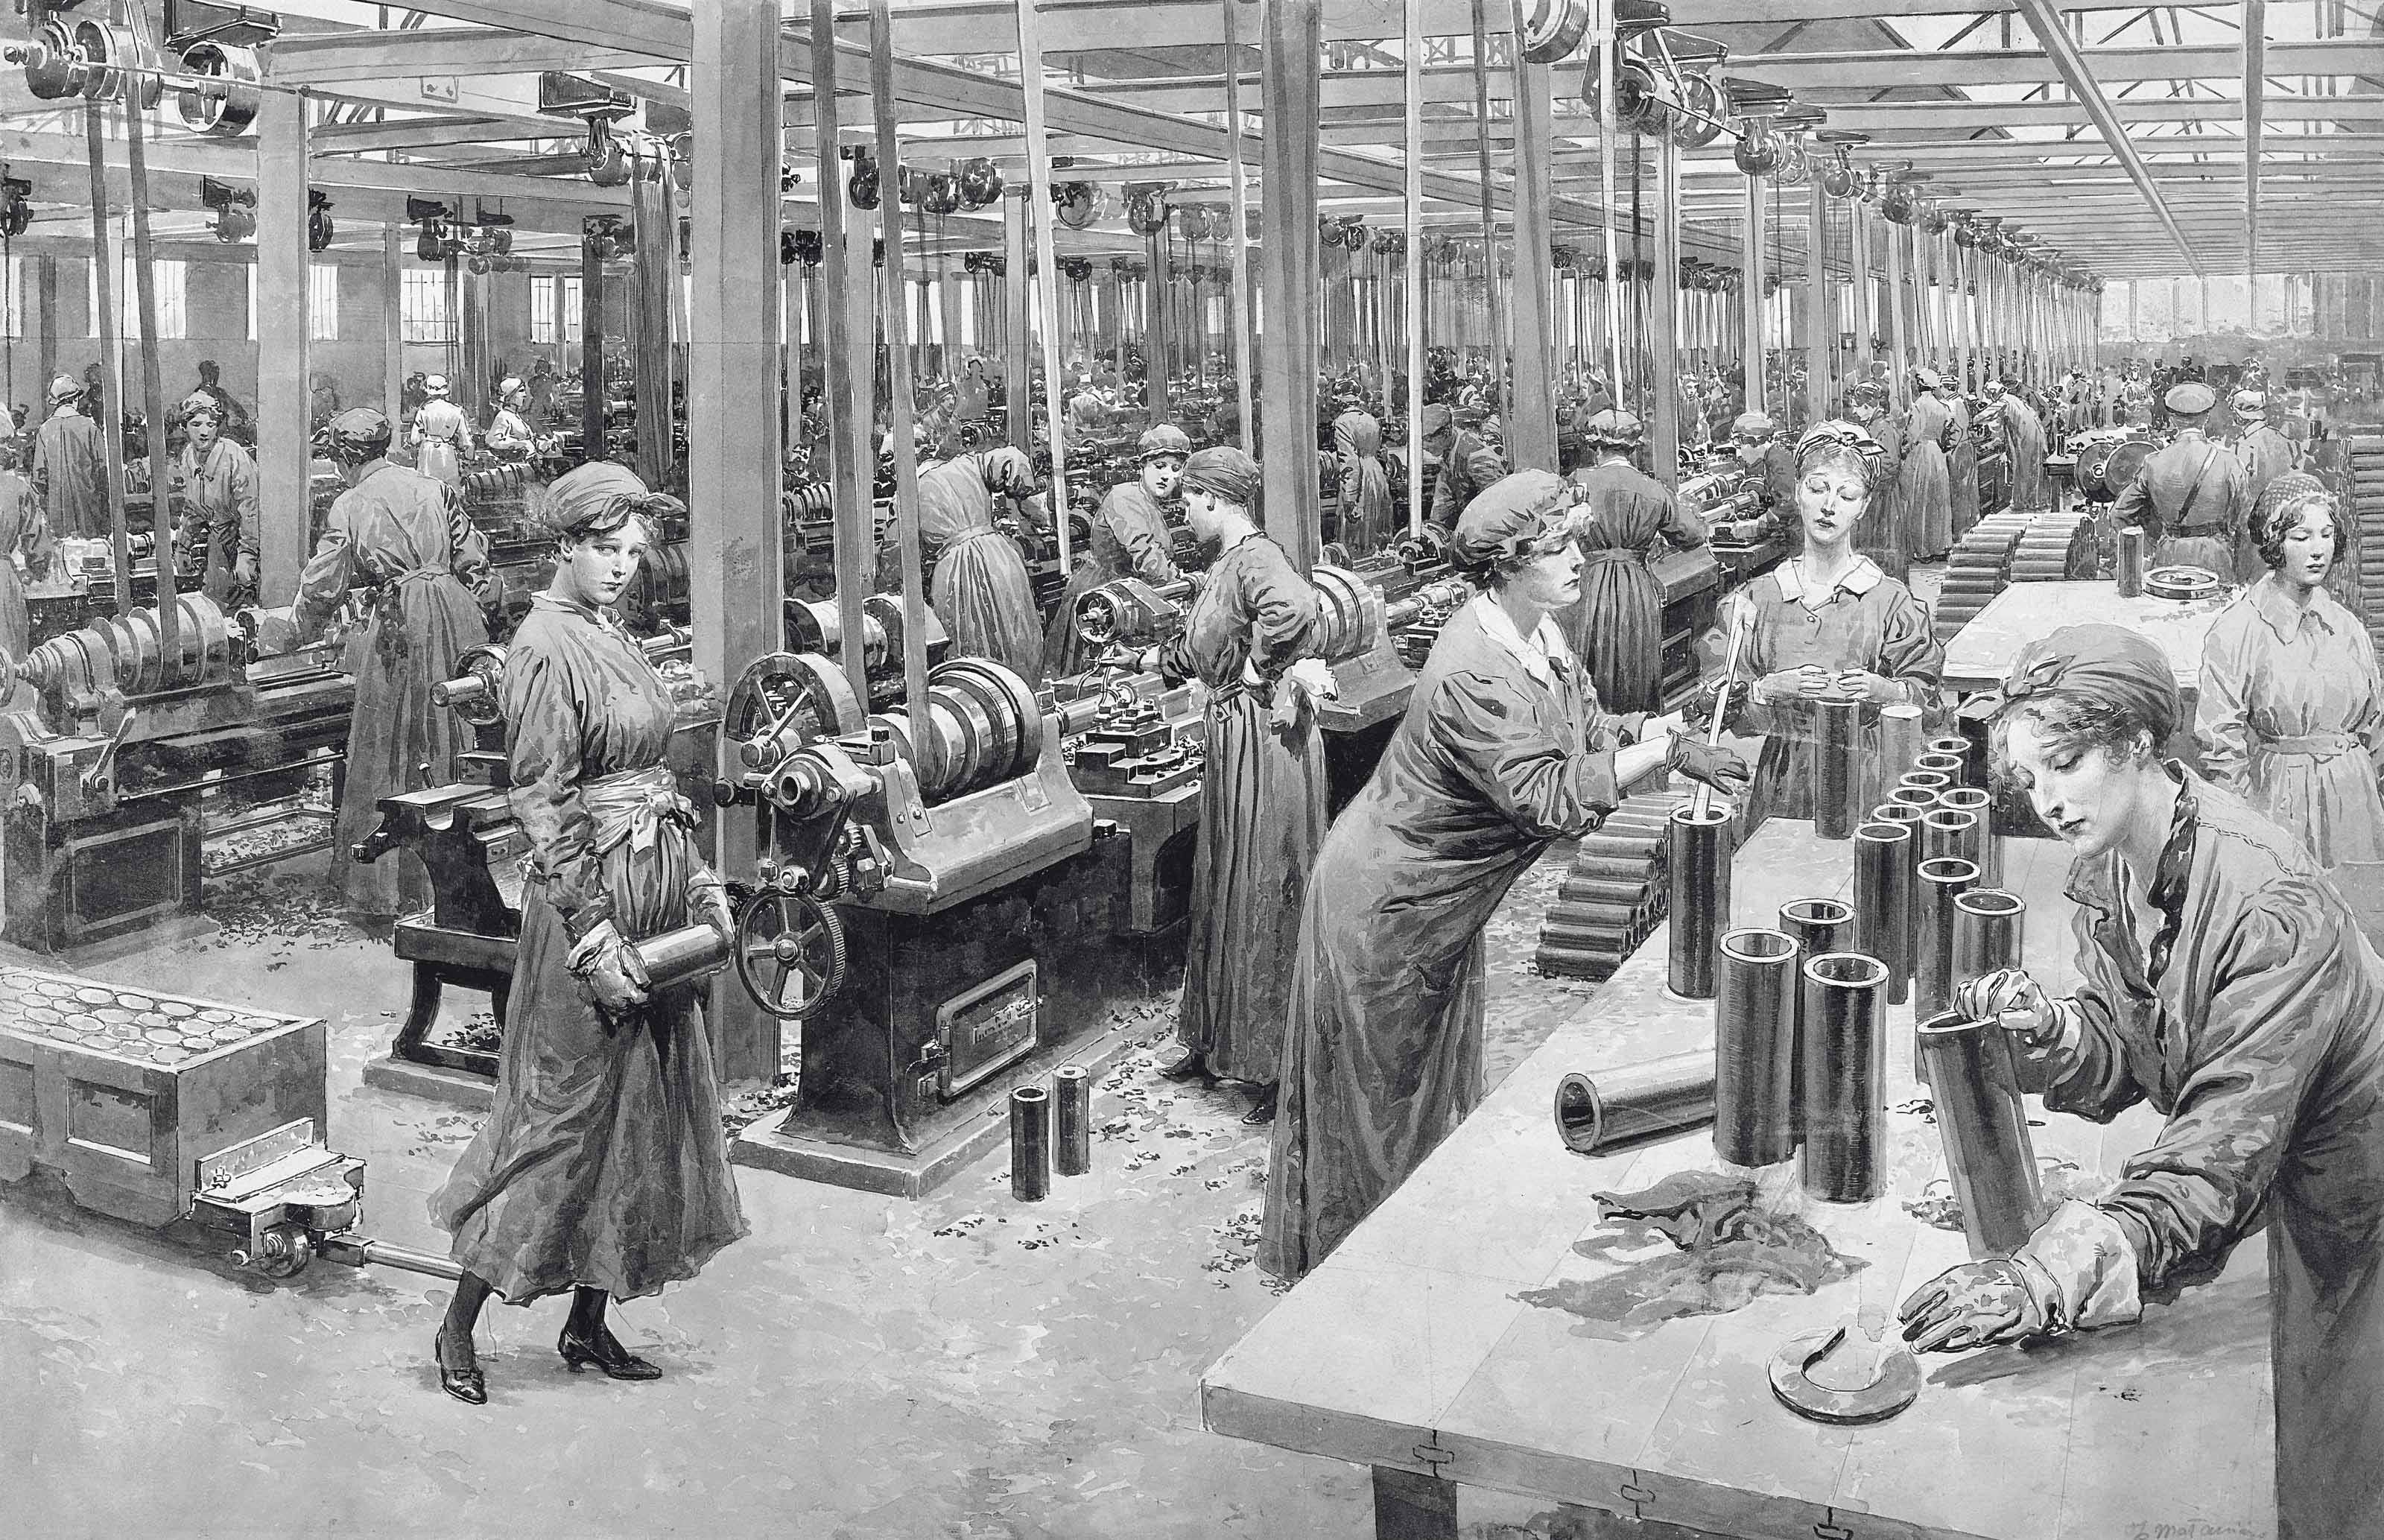 The new munition workers busily engaged in turning out shell for the British Army